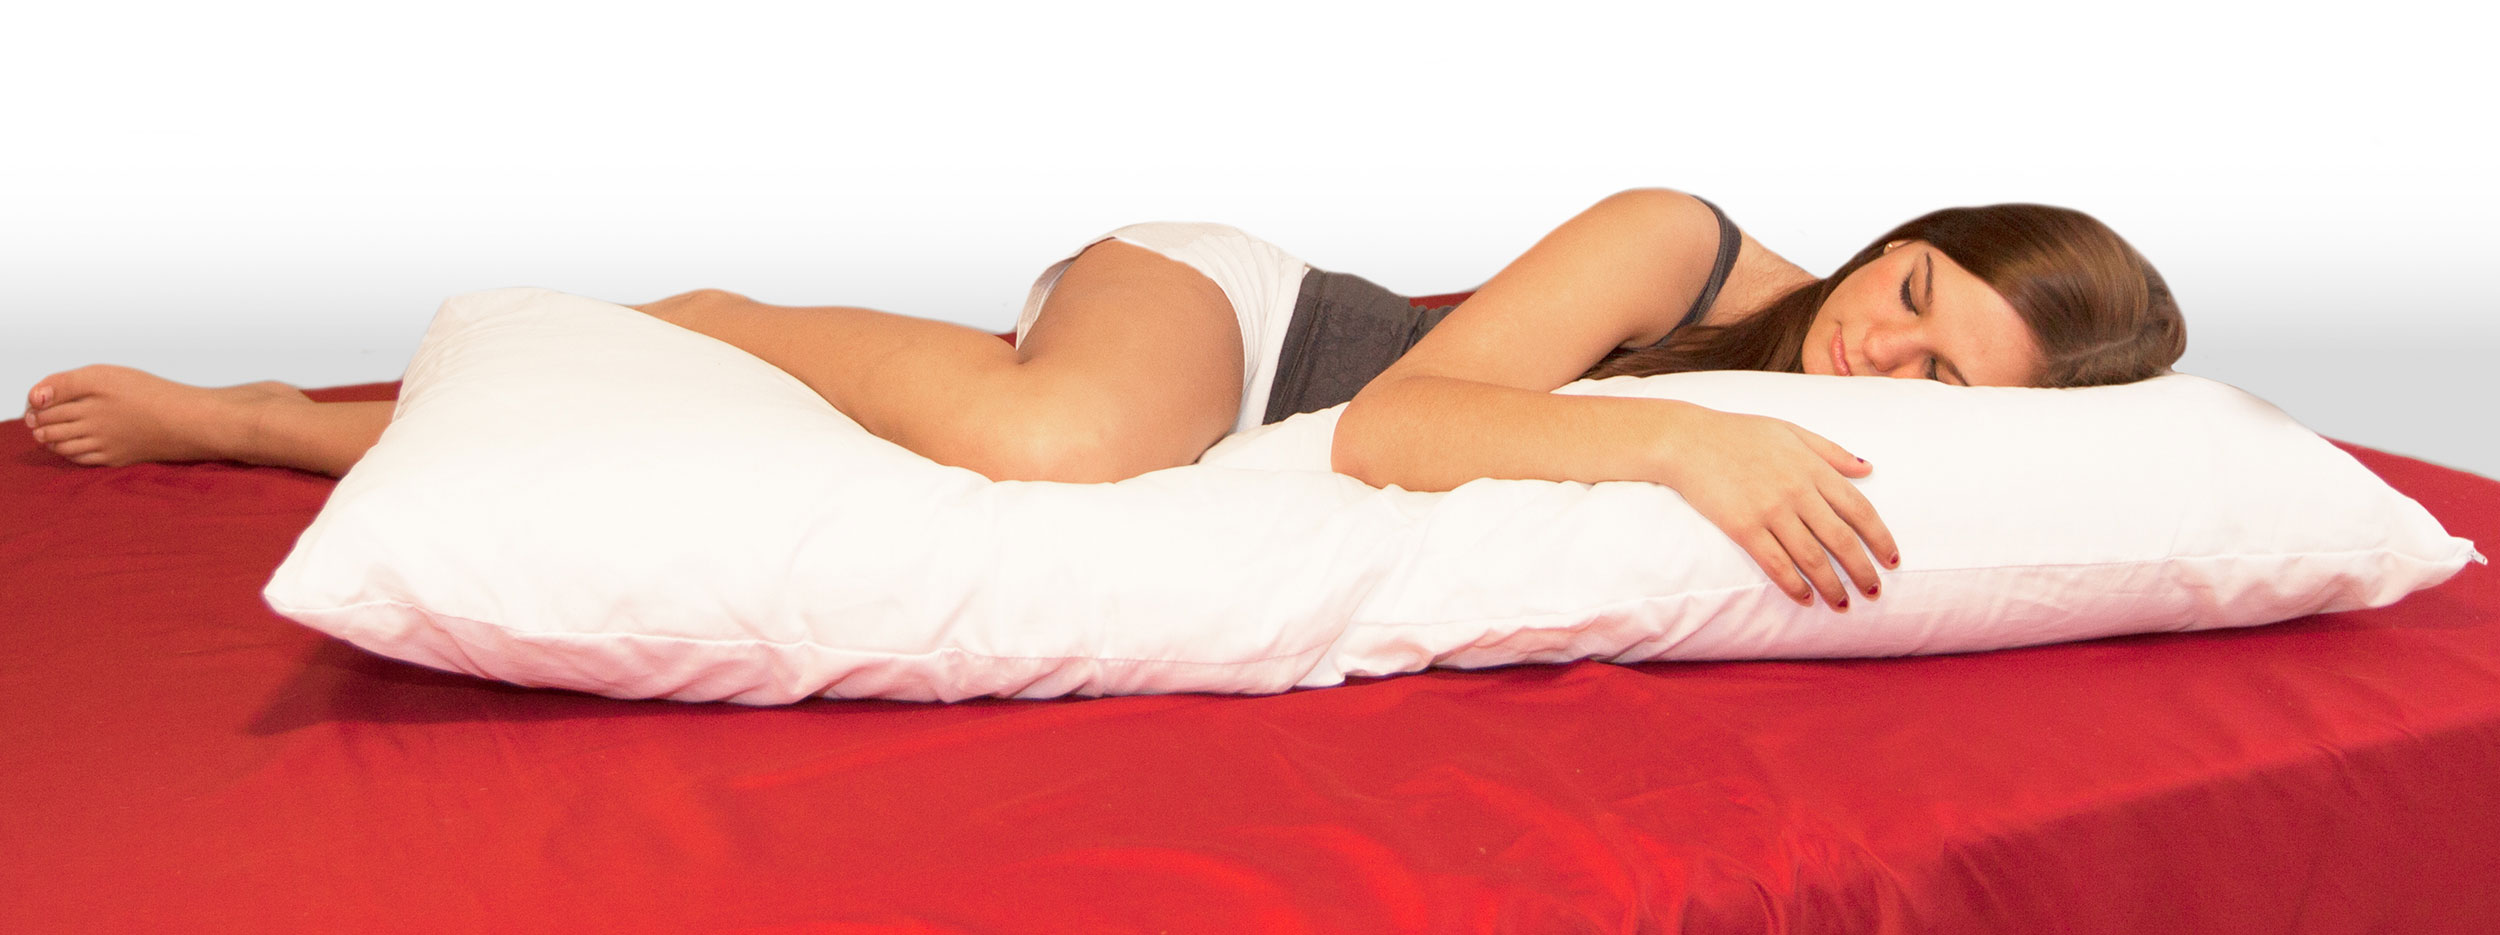 Back Support Pillow in Bed Pillows